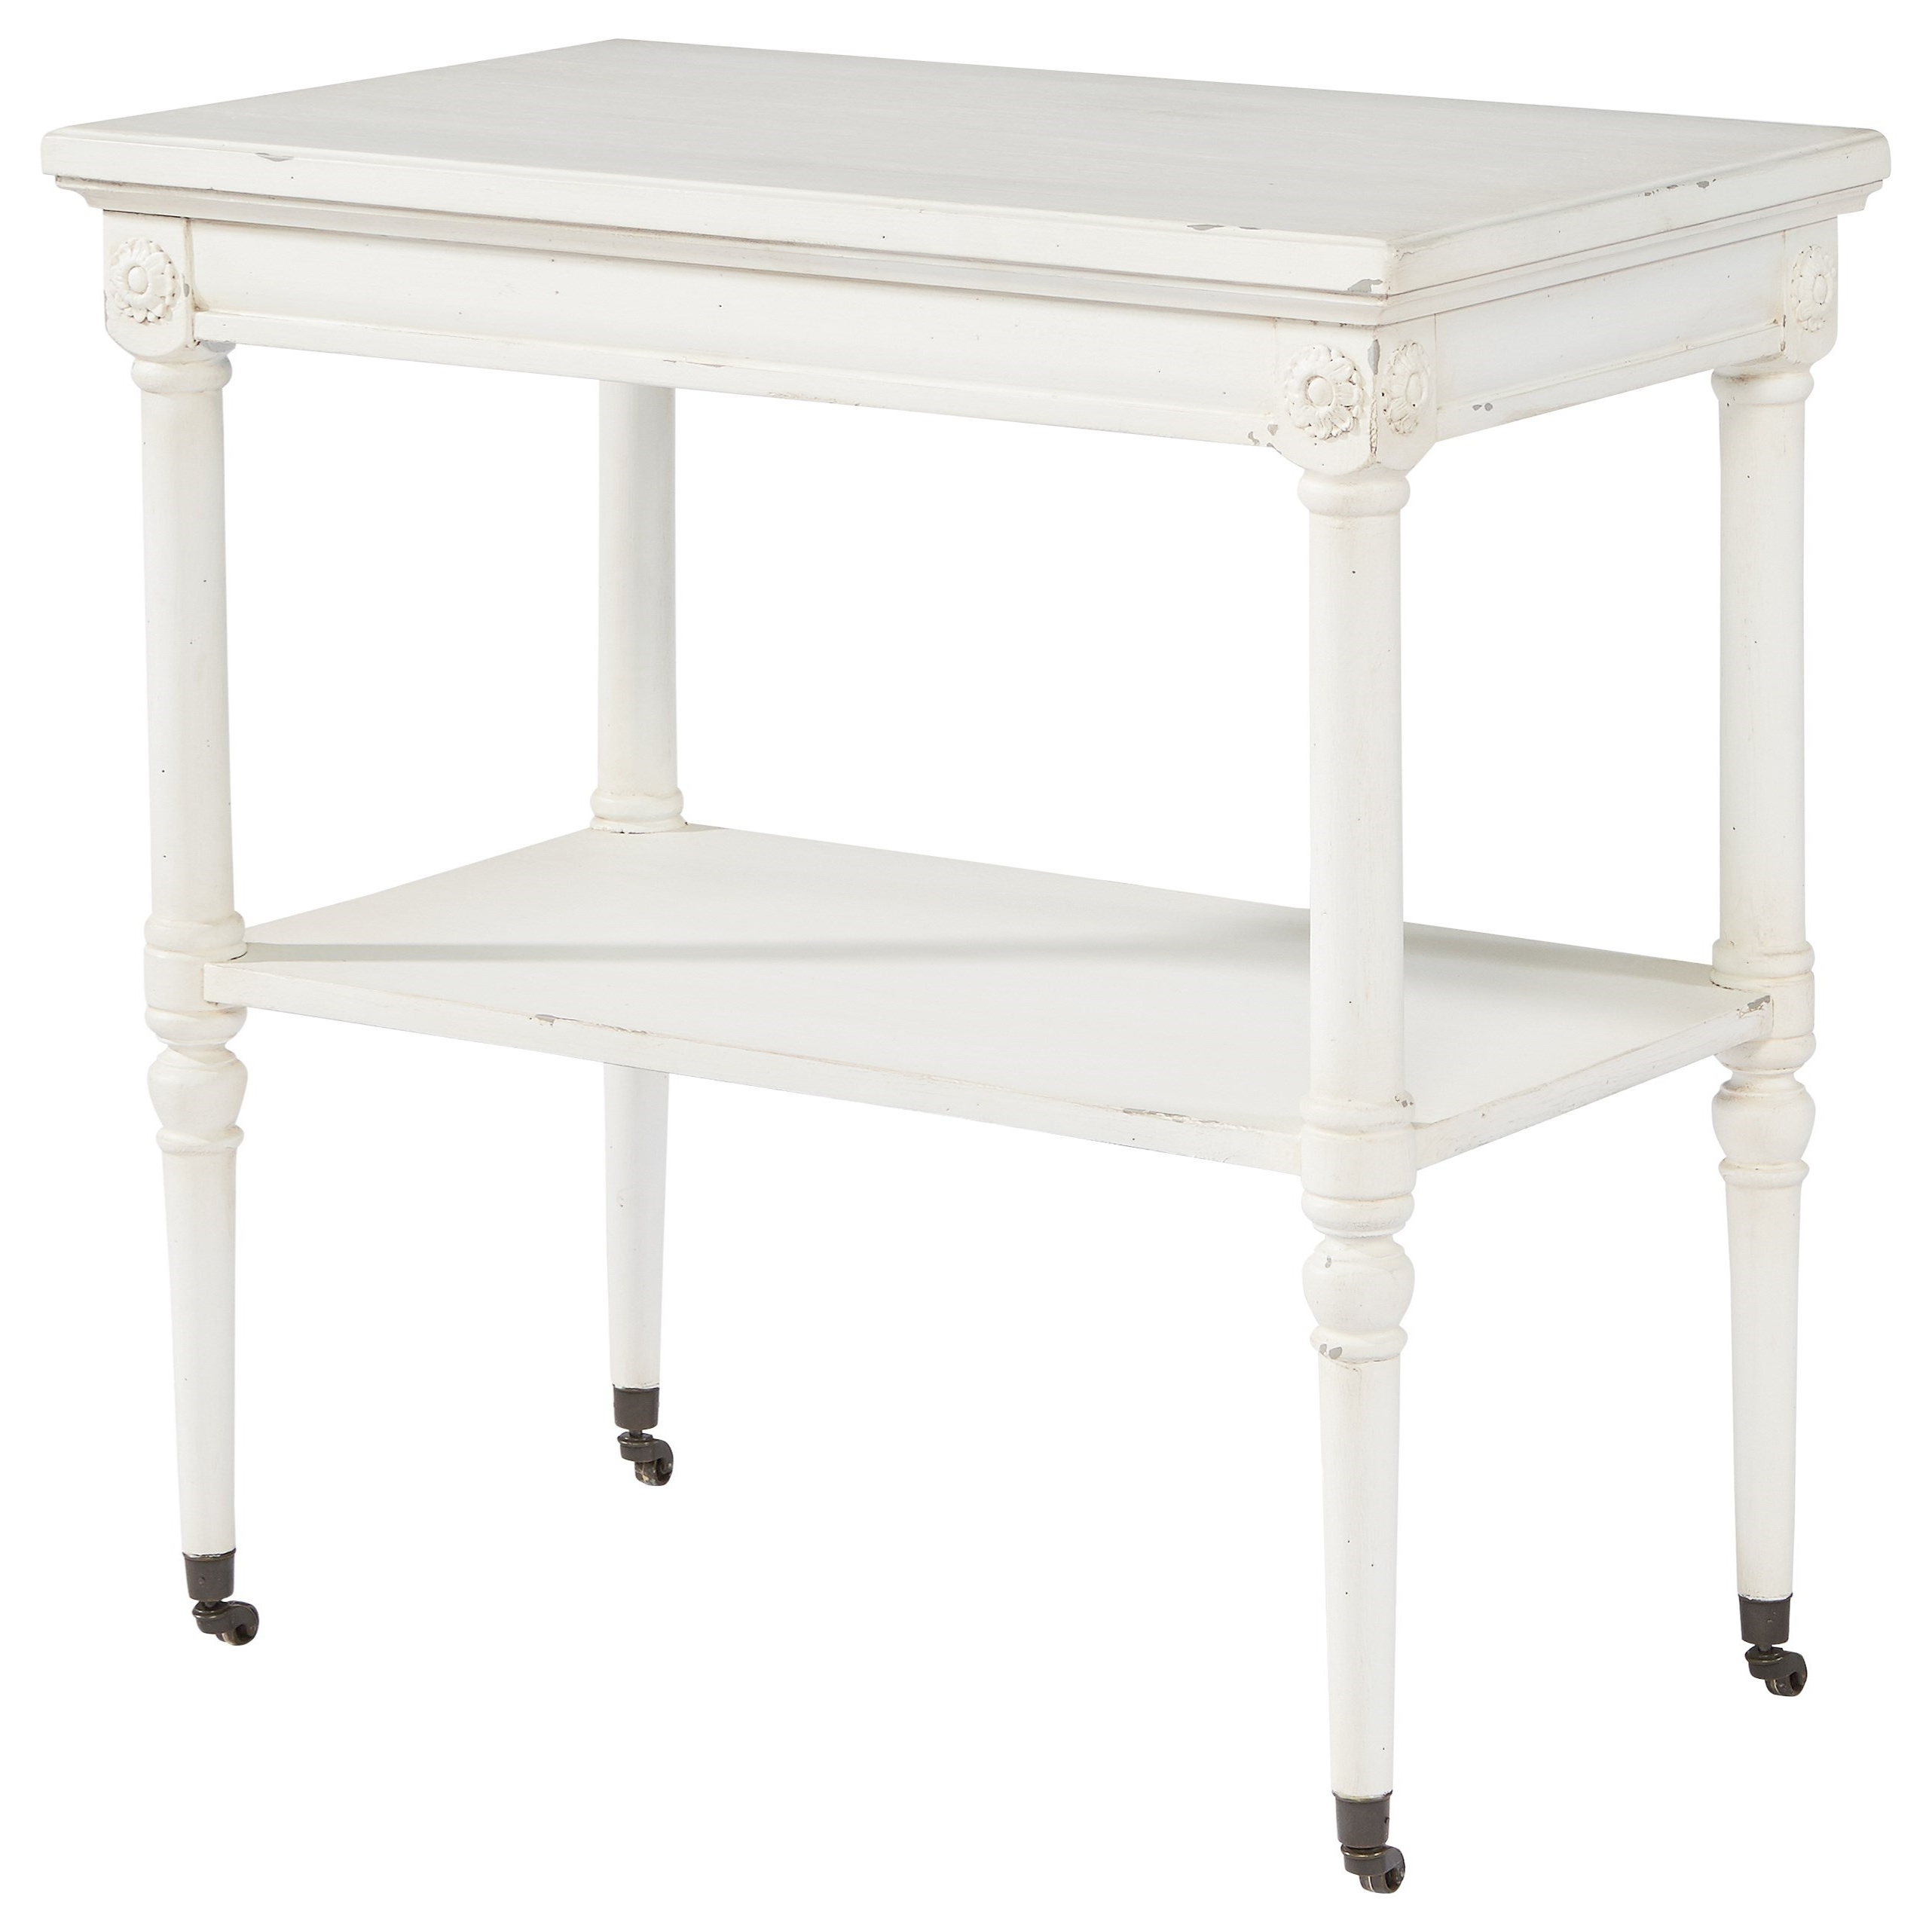 Magnolia Homejoanna Gaines French Inspired Petite Rosette Table Regarding Favorite Magnolia Home Scallop Antique White Cocktail Tables (View 13 of 20)